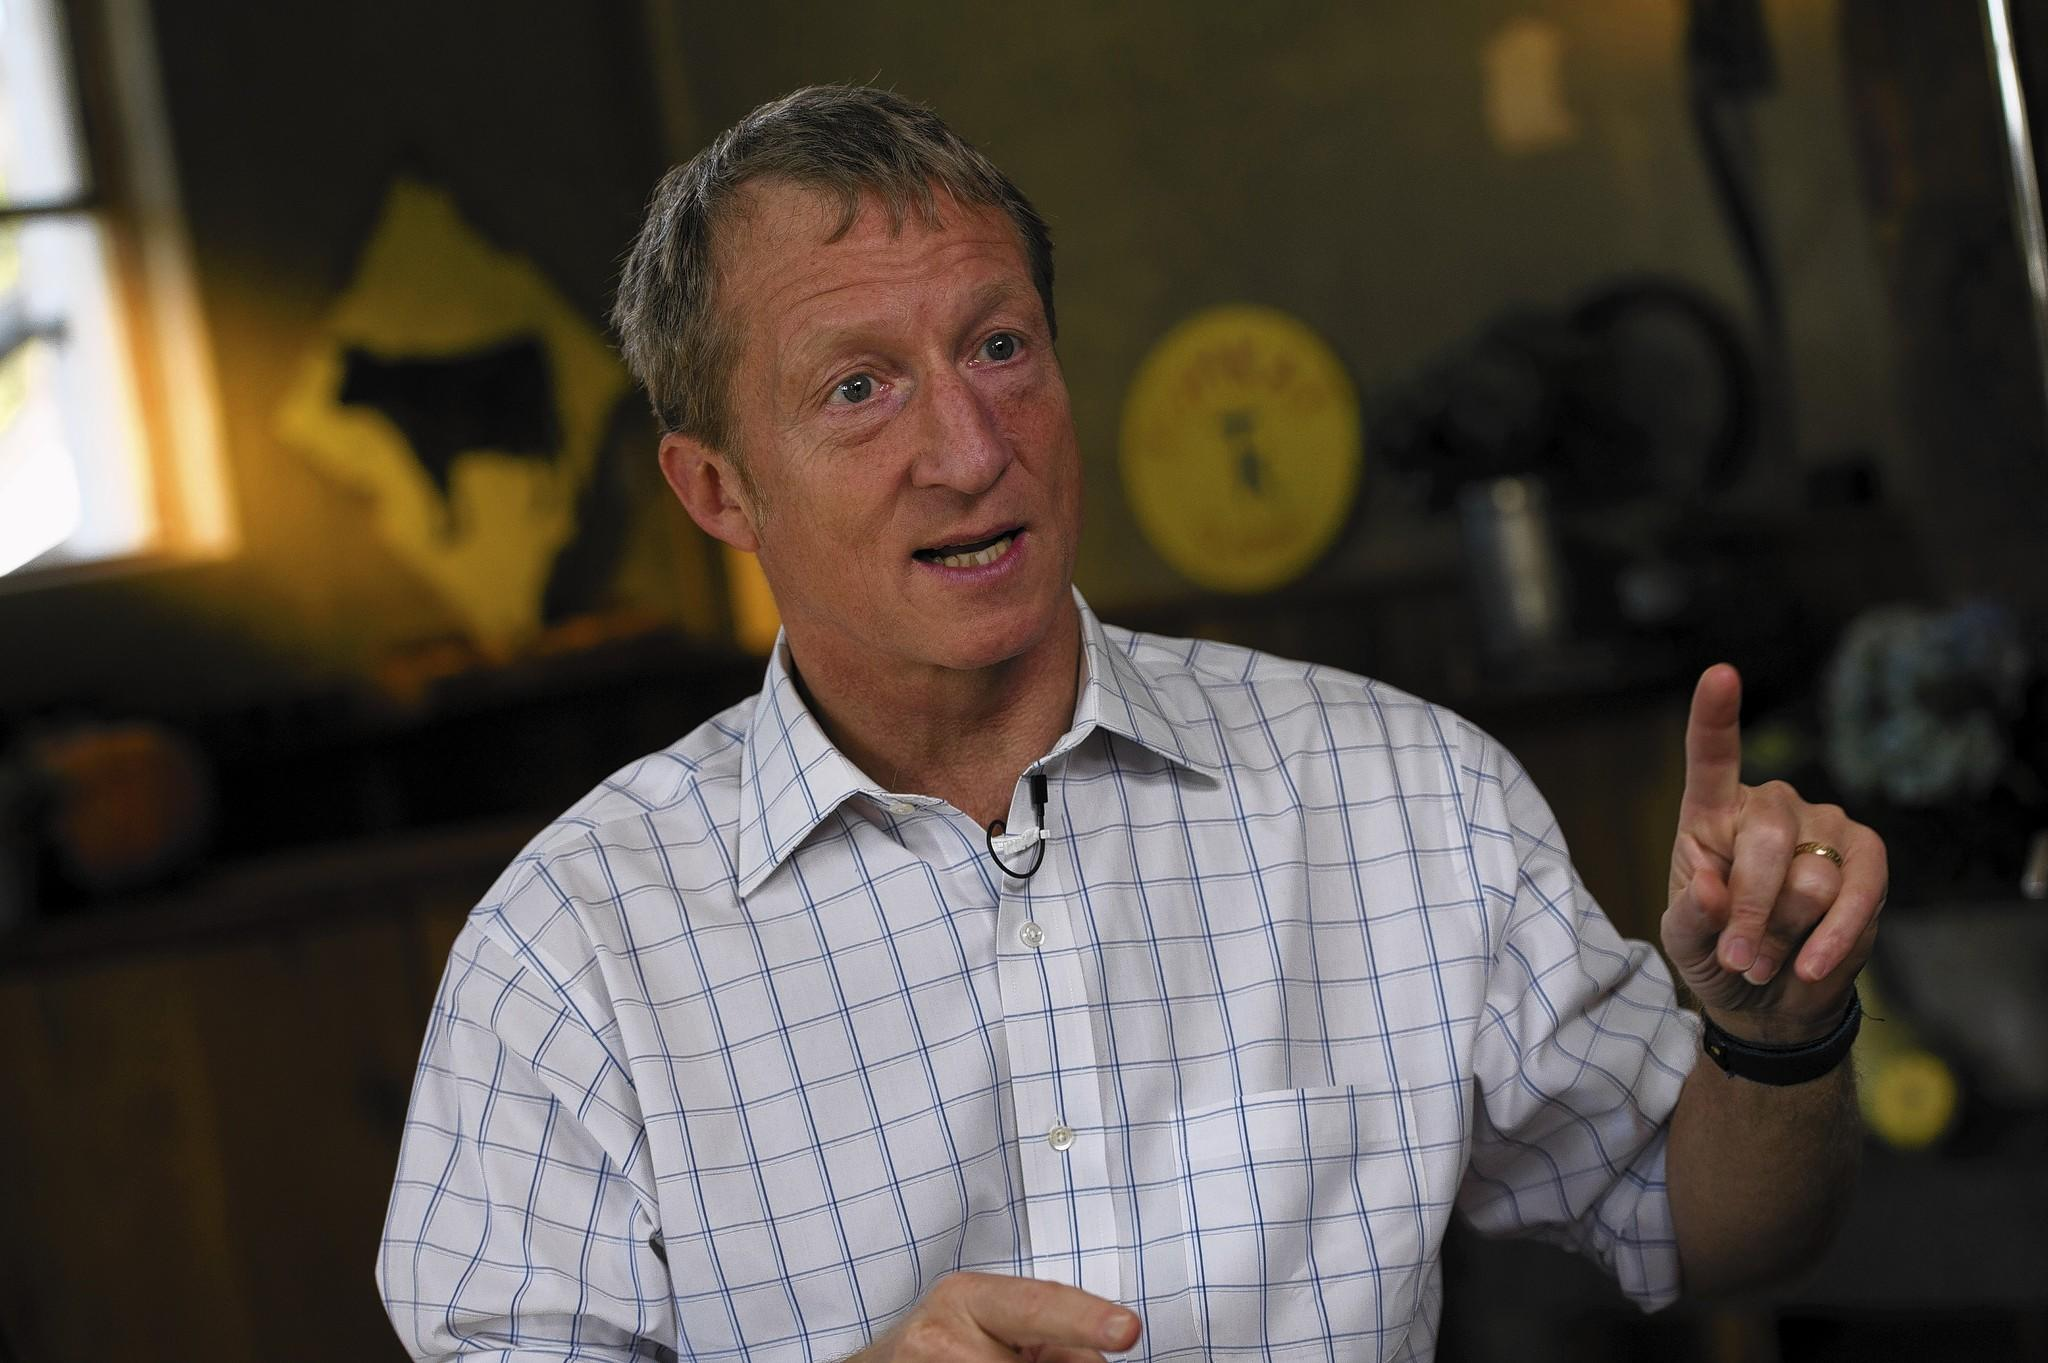 Tom Steyer, a former hedge fund manager, is spending some of his fortune on liberal and environmental issues like fighting the Keystone XL pipeline.